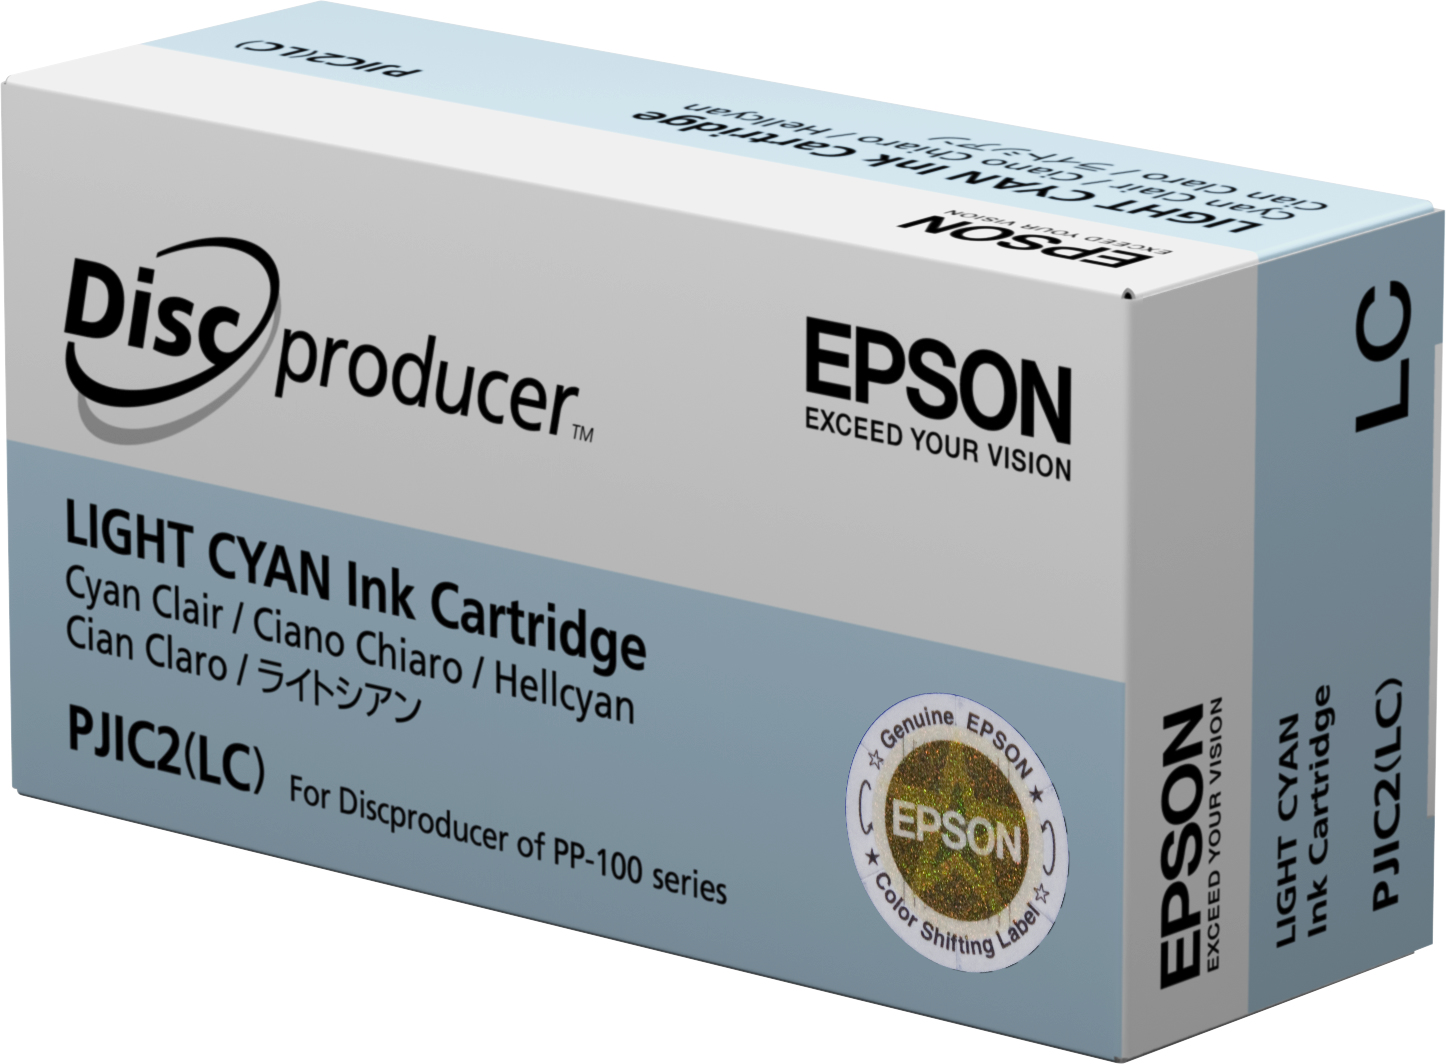 Epson - Light Cyan - Original - Ink Cartridge - For Discproducer PP-100, PP-100AP, PP-100II, PP-100N, PP-100NS, PP-50 C13S020448 - C2000